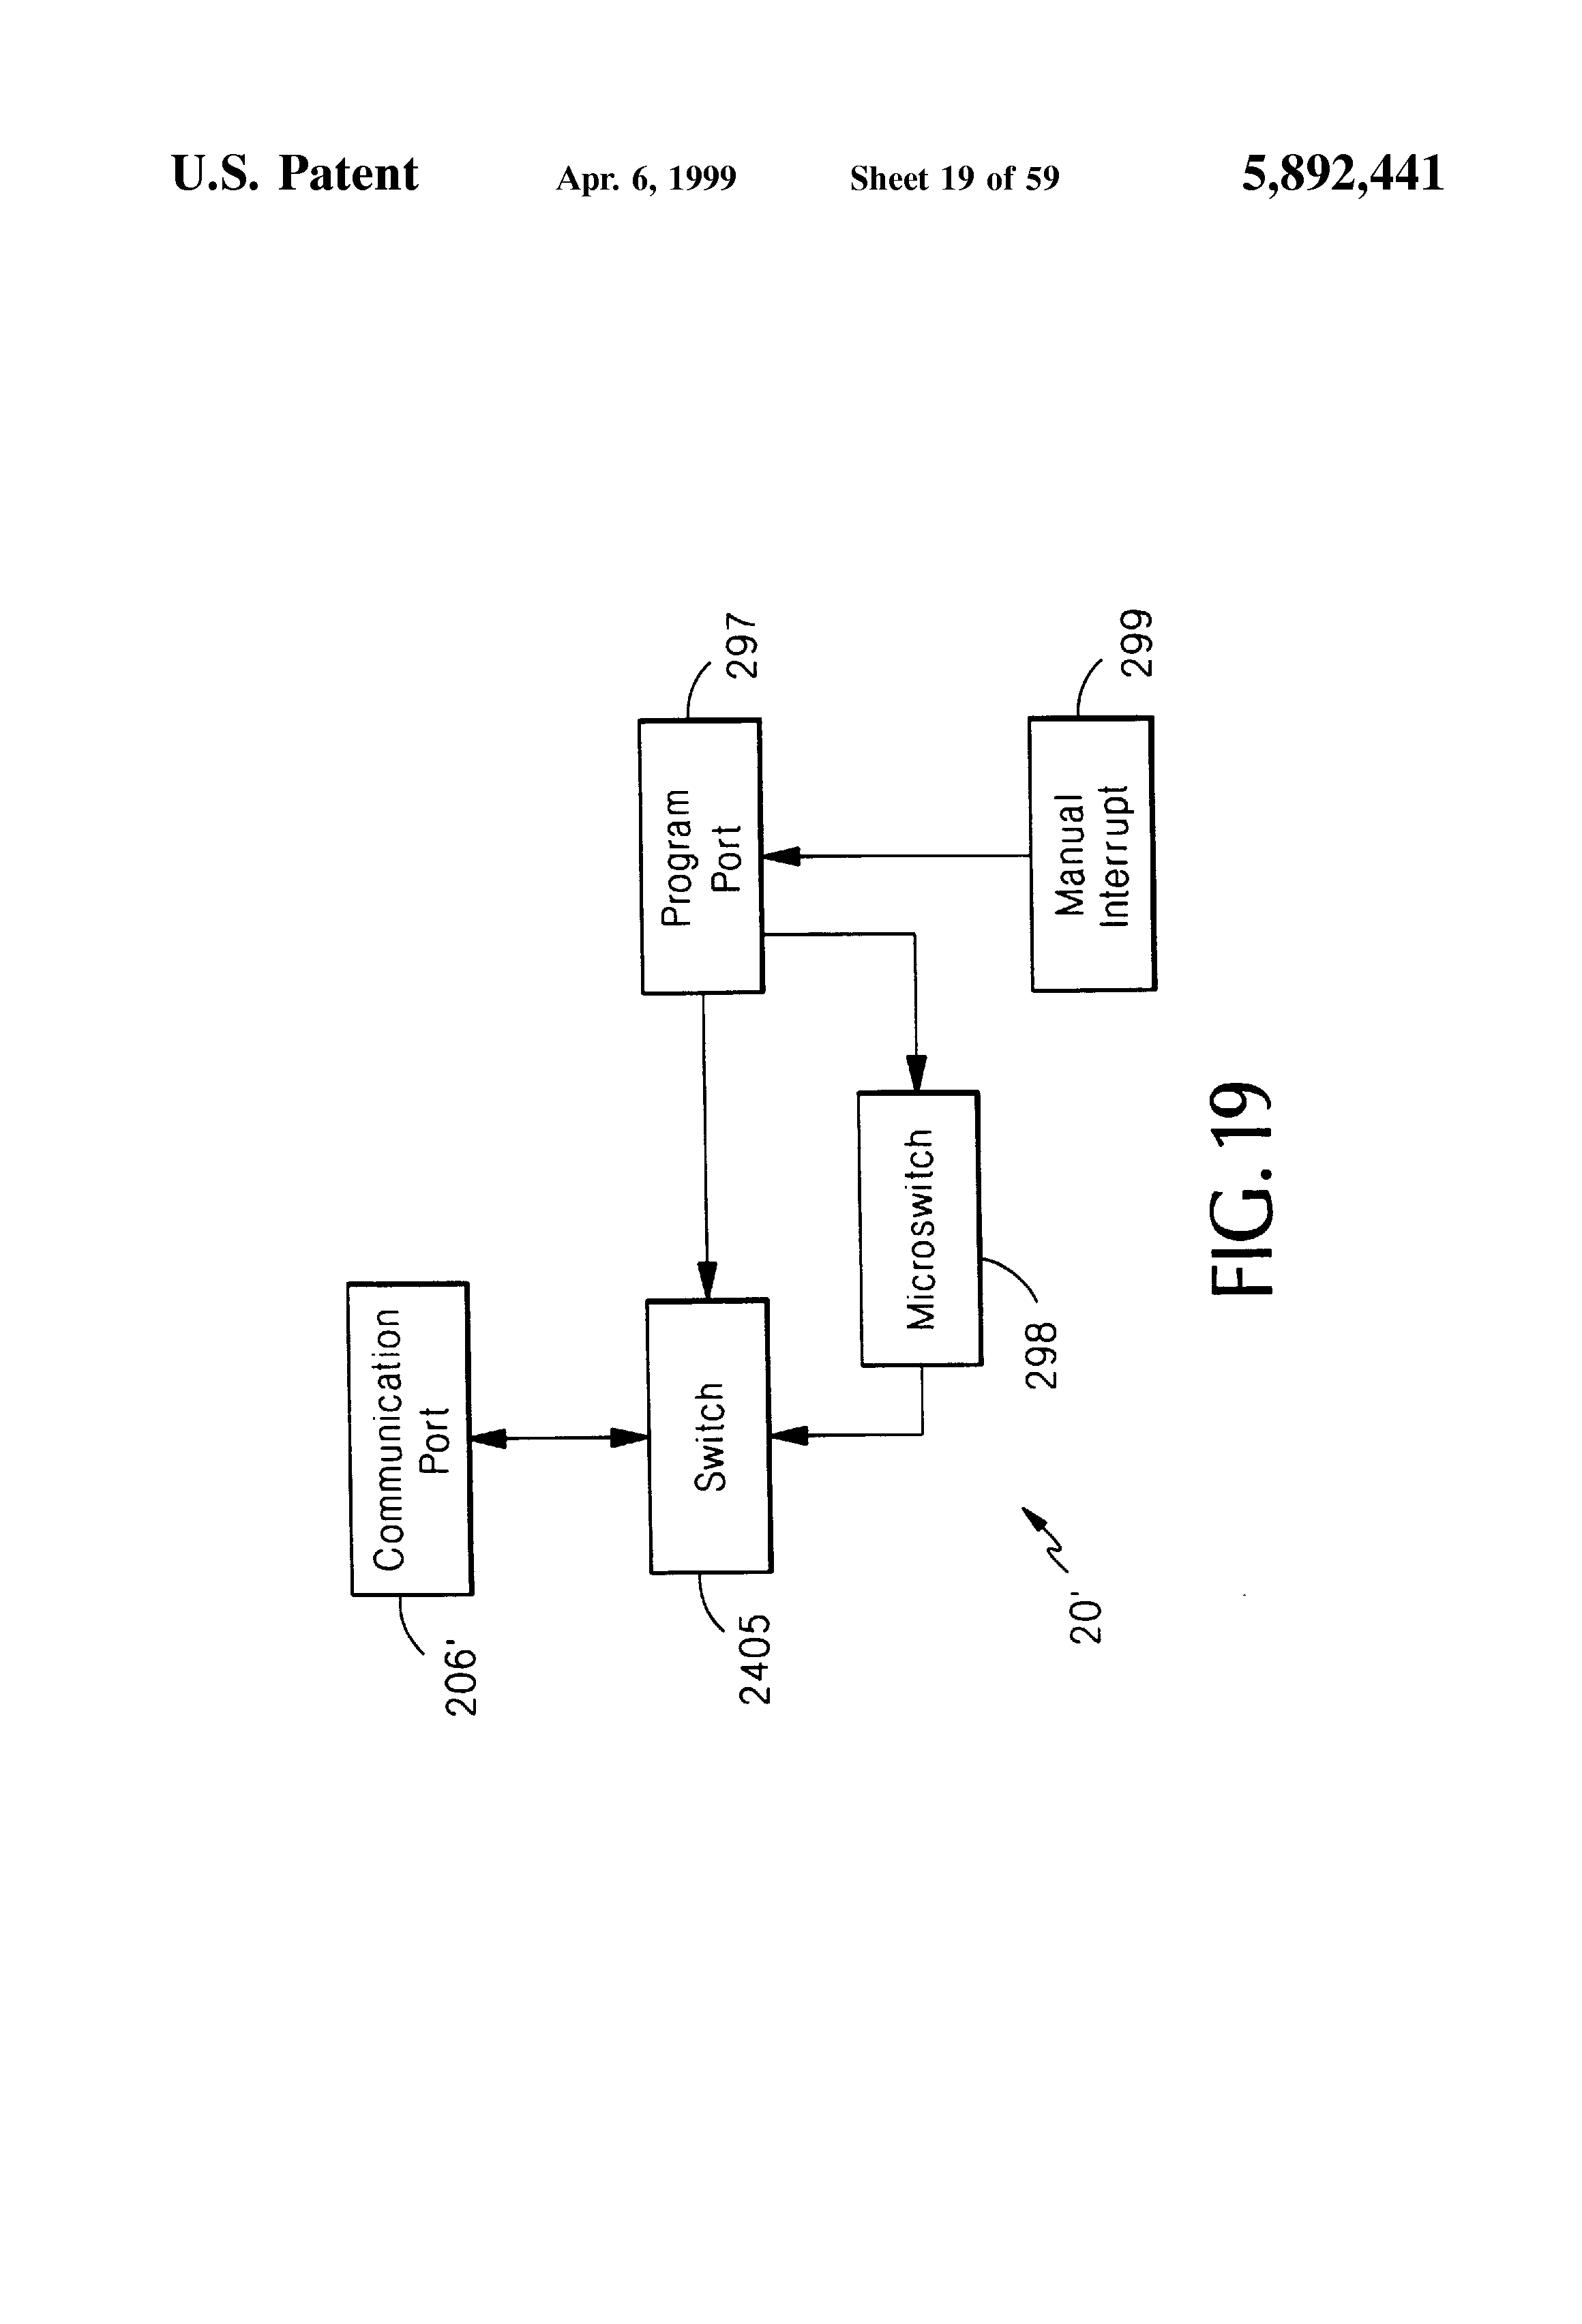 Patent Us5892441 Sensing With Active Electronic Tags Google Patents Circuit Gpsreceiver Communicationcircuit Diagram Drawing